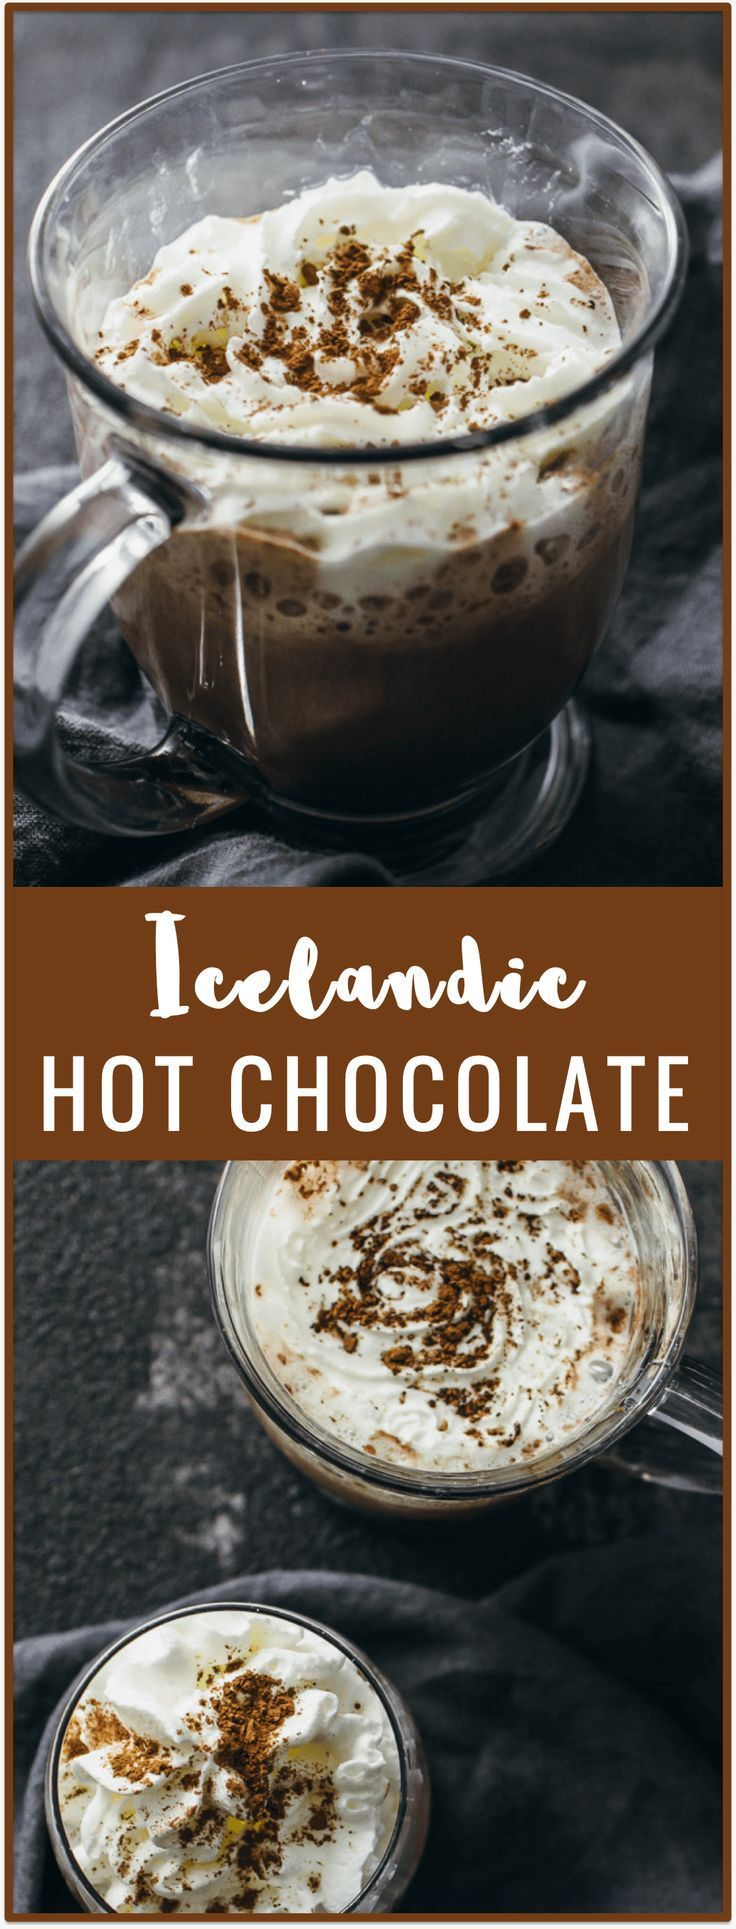 806 best Hot Chocolate images on Pinterest | Hot chocolate recipes ...